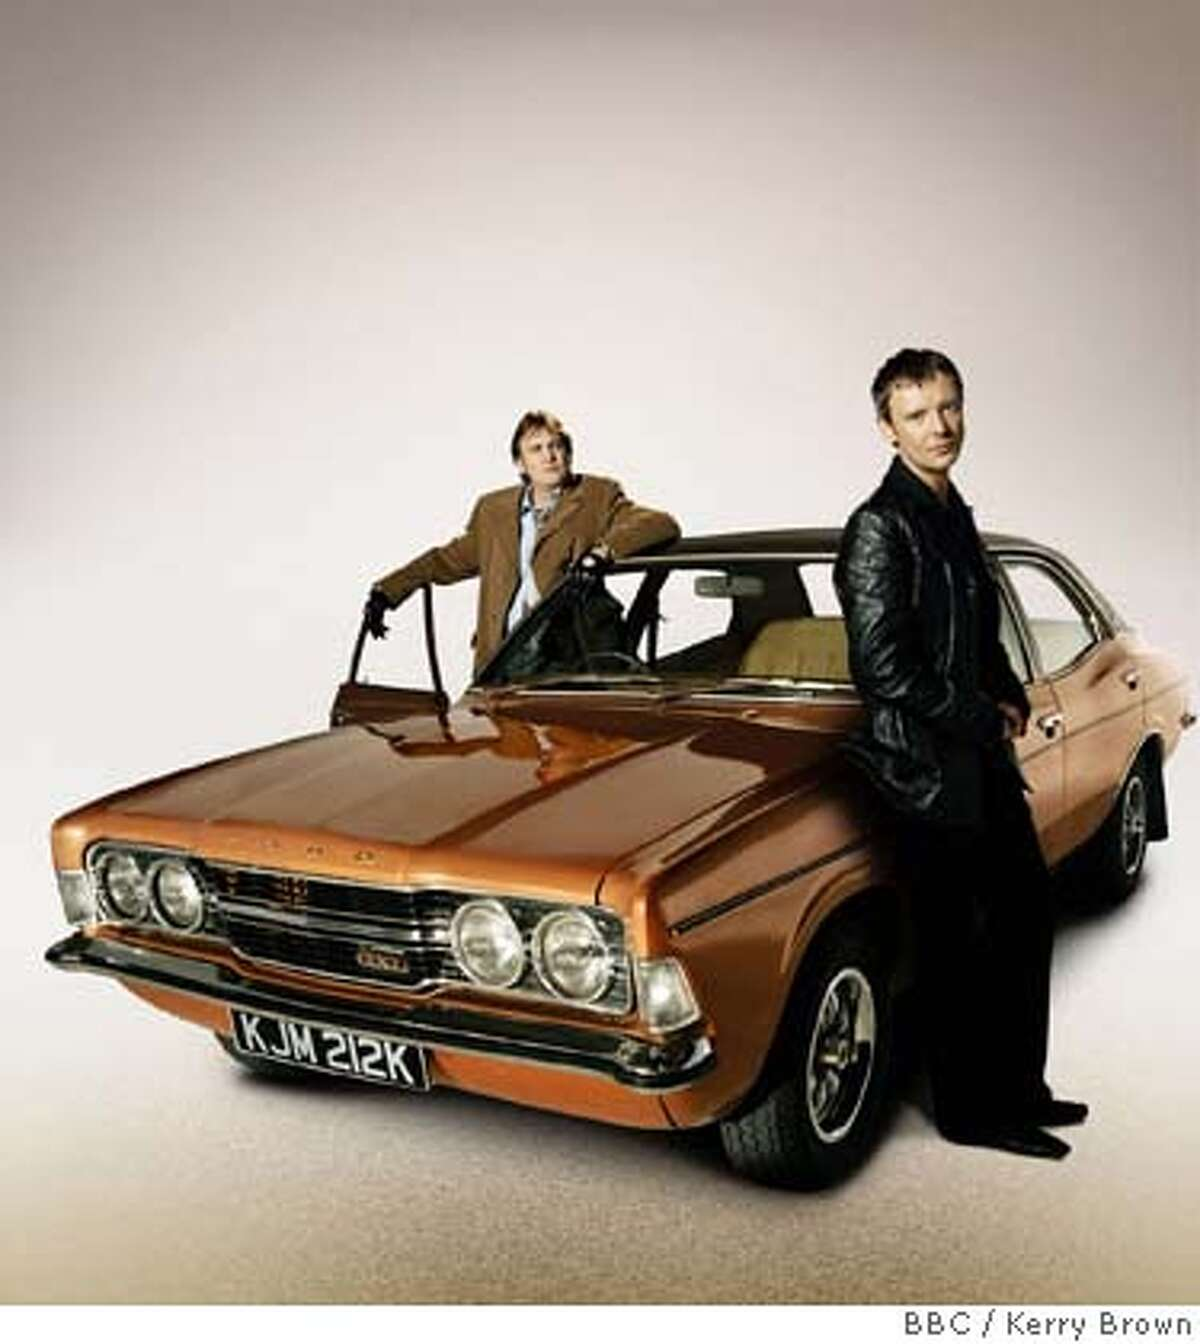 With a series of gripping investigations and a murder inquiry that spans both eras, Life on Mars is a compelling drama and an imaginative exploration of the recent past. Starring John Simm (State of Play, The Lakes) and Philip Glenister (Byron). Ran on: 07-24-2006 John Simm (right) and Philip Glenister play 1970s British detectives in the BBCs clever Life on Mars. Ran on: 03-23-2007 The British series Life on Mars will be remade by ABC. Ran on: 12-10-2007 Philip Glenister (left) and John Simm are back in eight long-awaited episodes of BBC Americas Life on Mars.